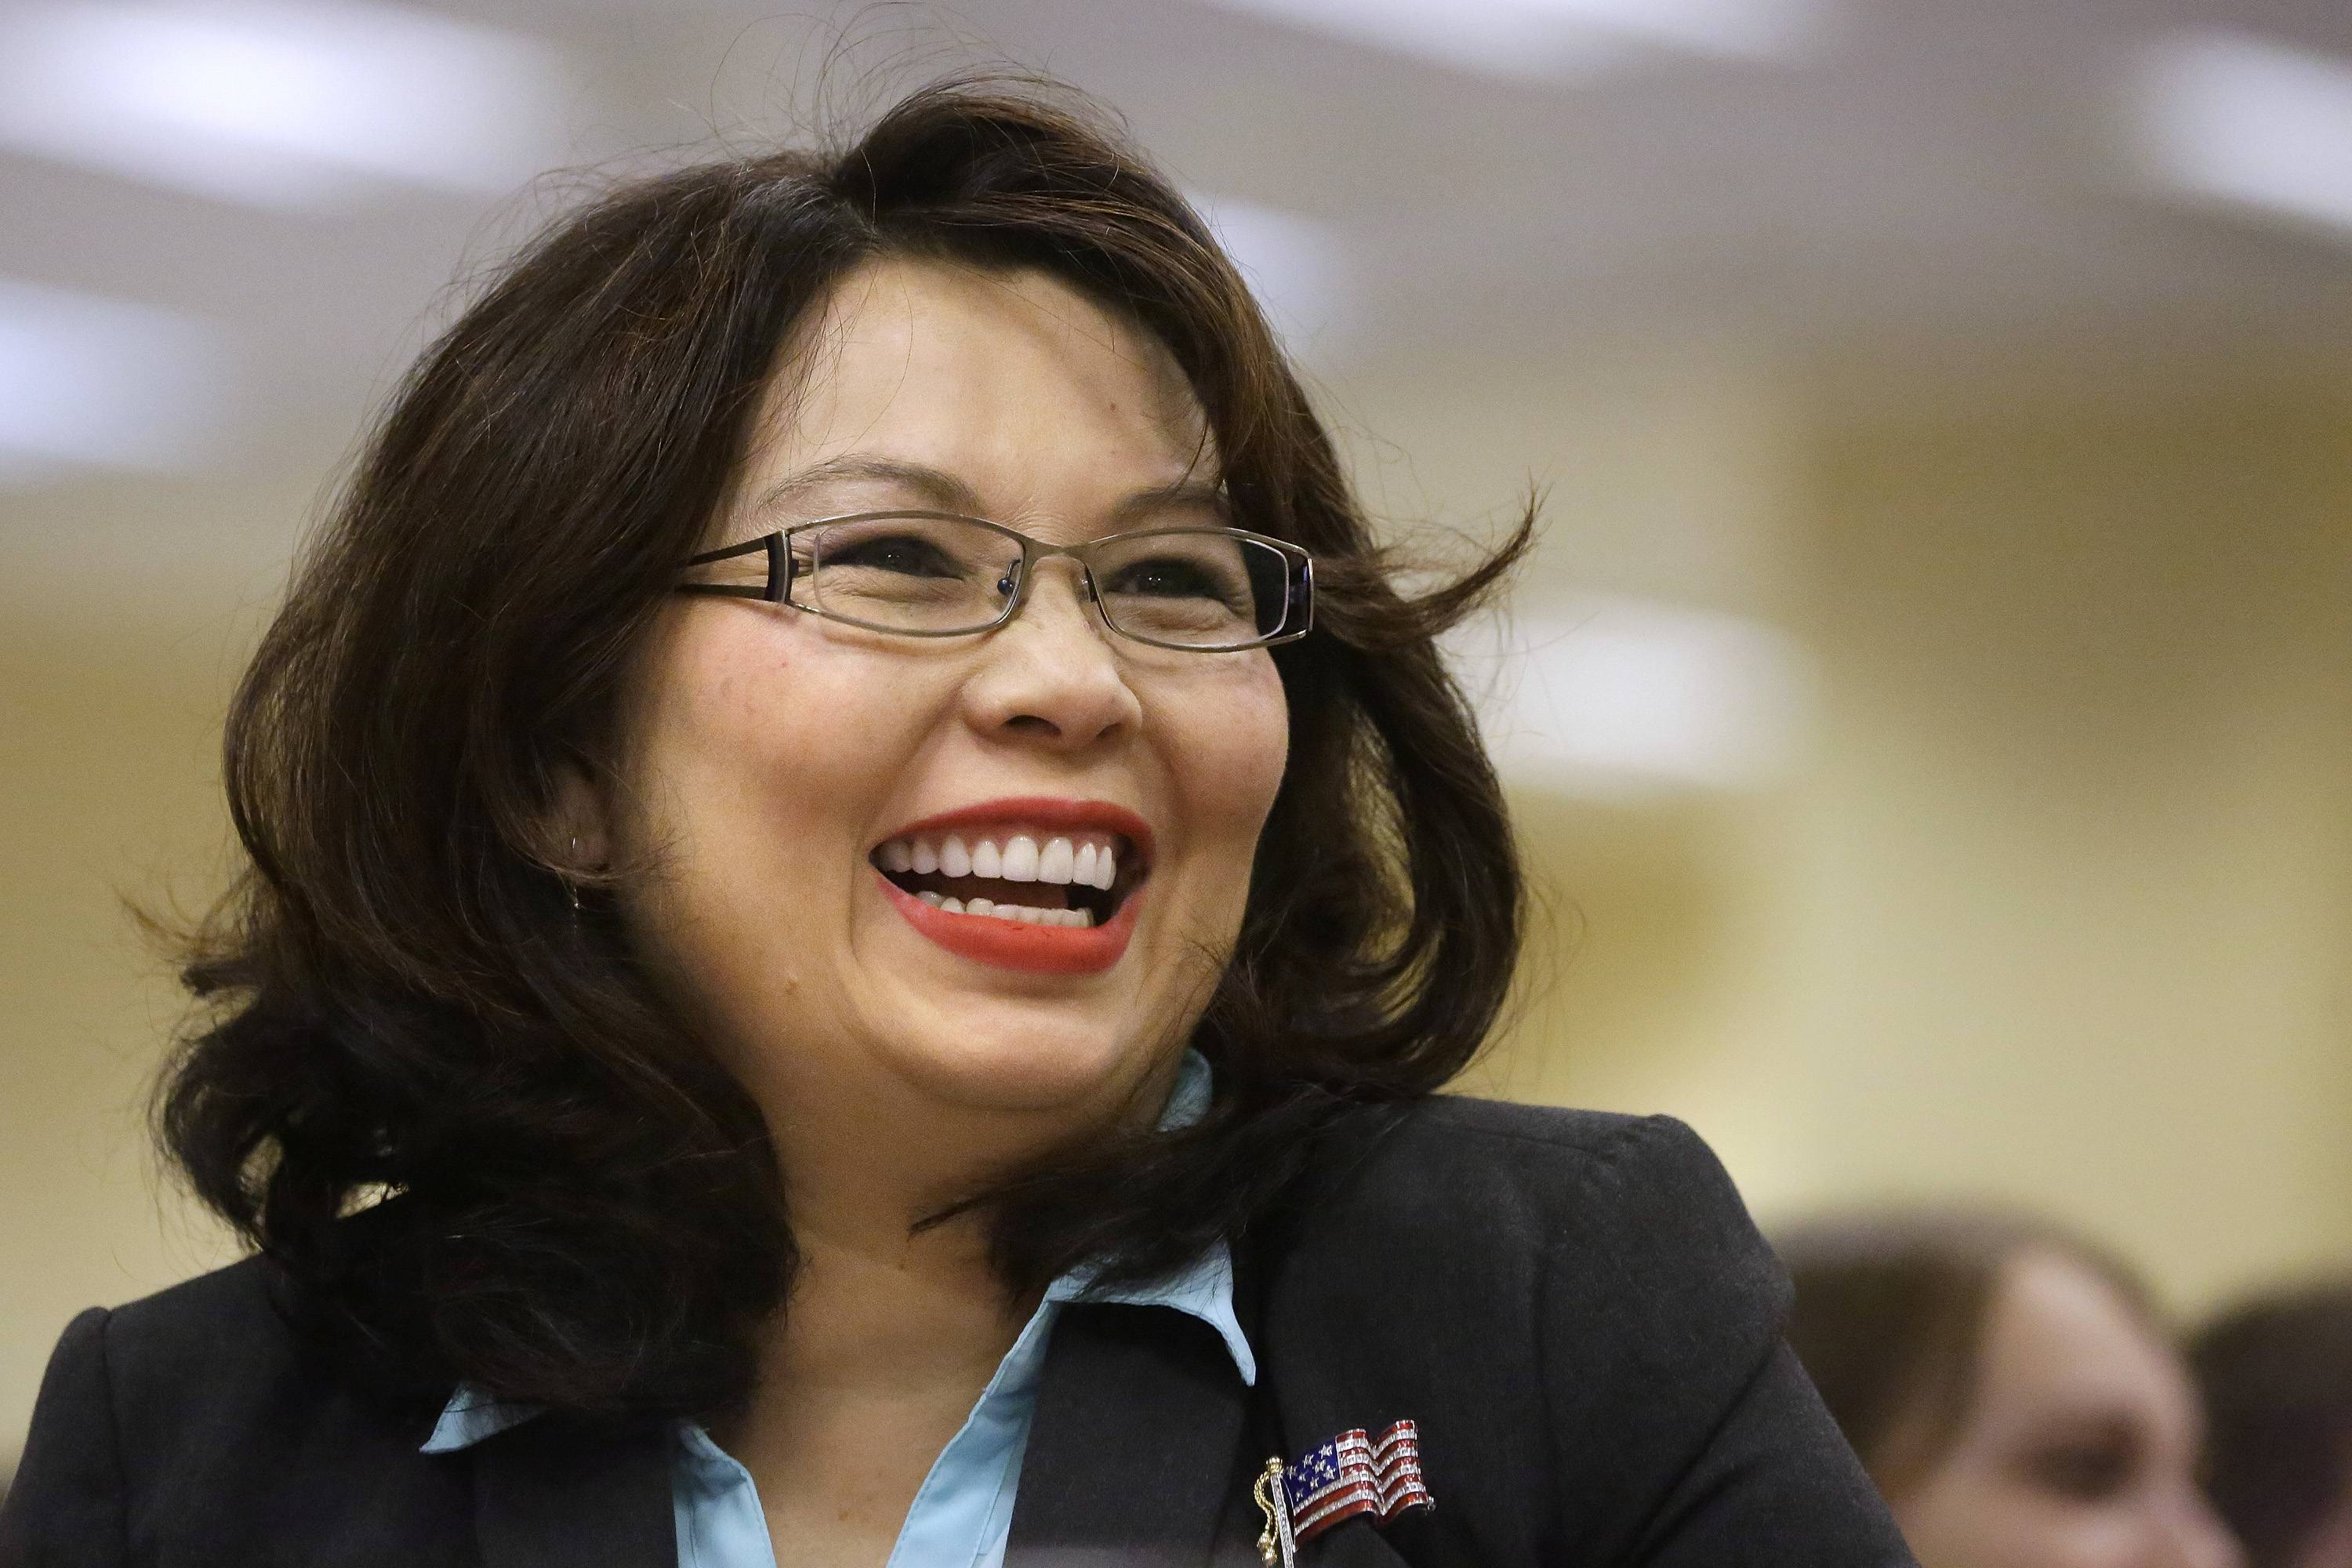 U.S. Rep. Tammy Duckworth, a Hoffman Estates Democrat, gave the keynote speech at Democrats' annual breakfast during the Illinois State Fair Wednesday.